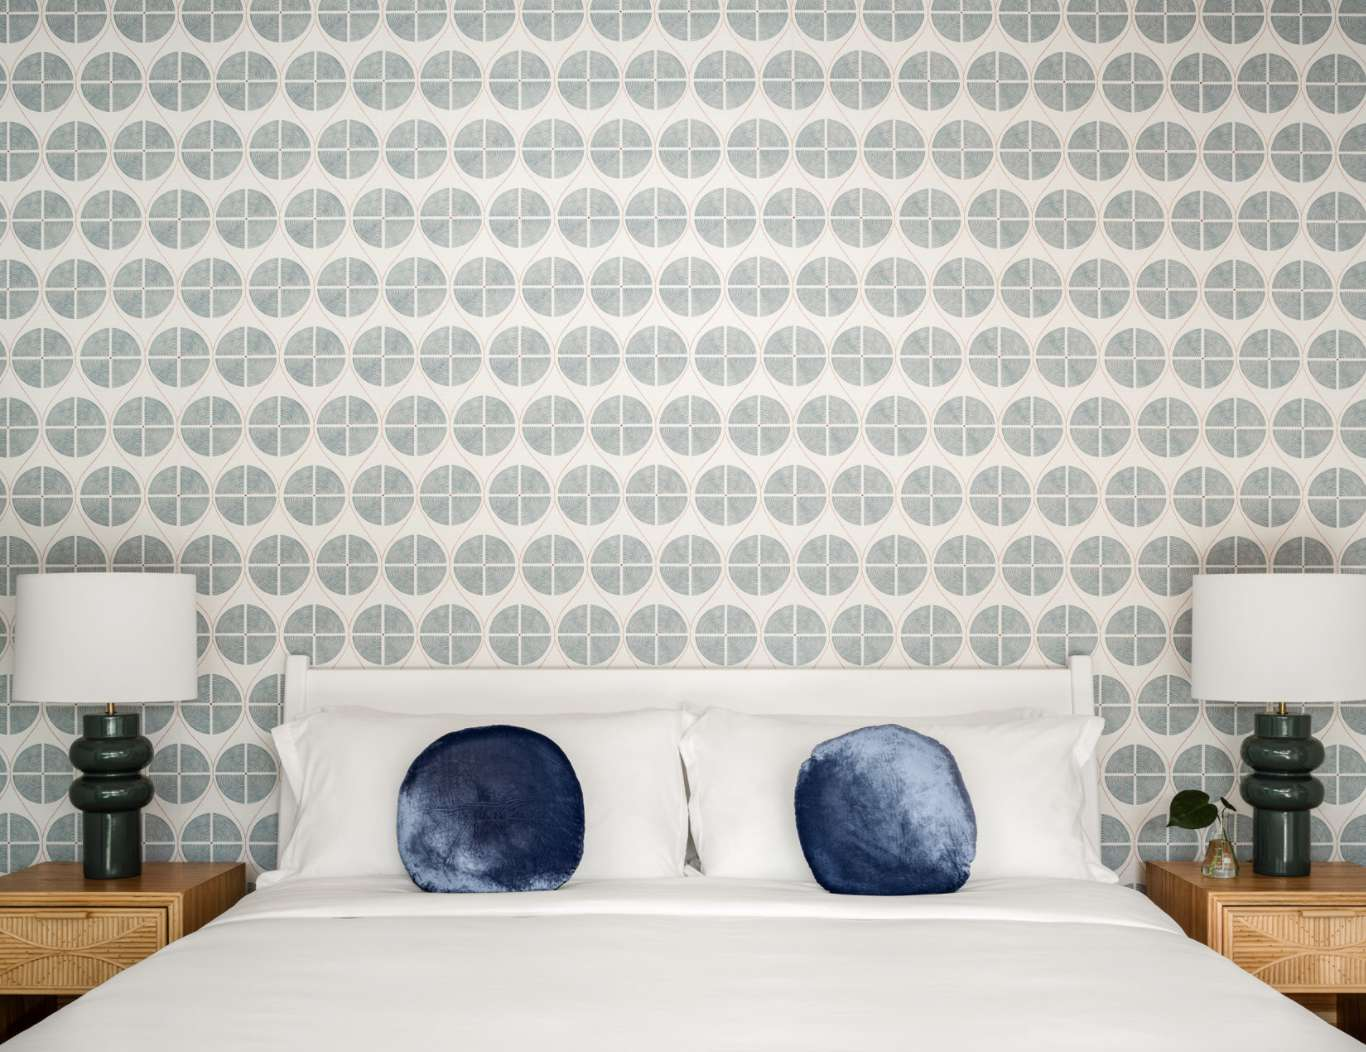 bedroom with circular pattern wallpaper and circle throw pillows on bed